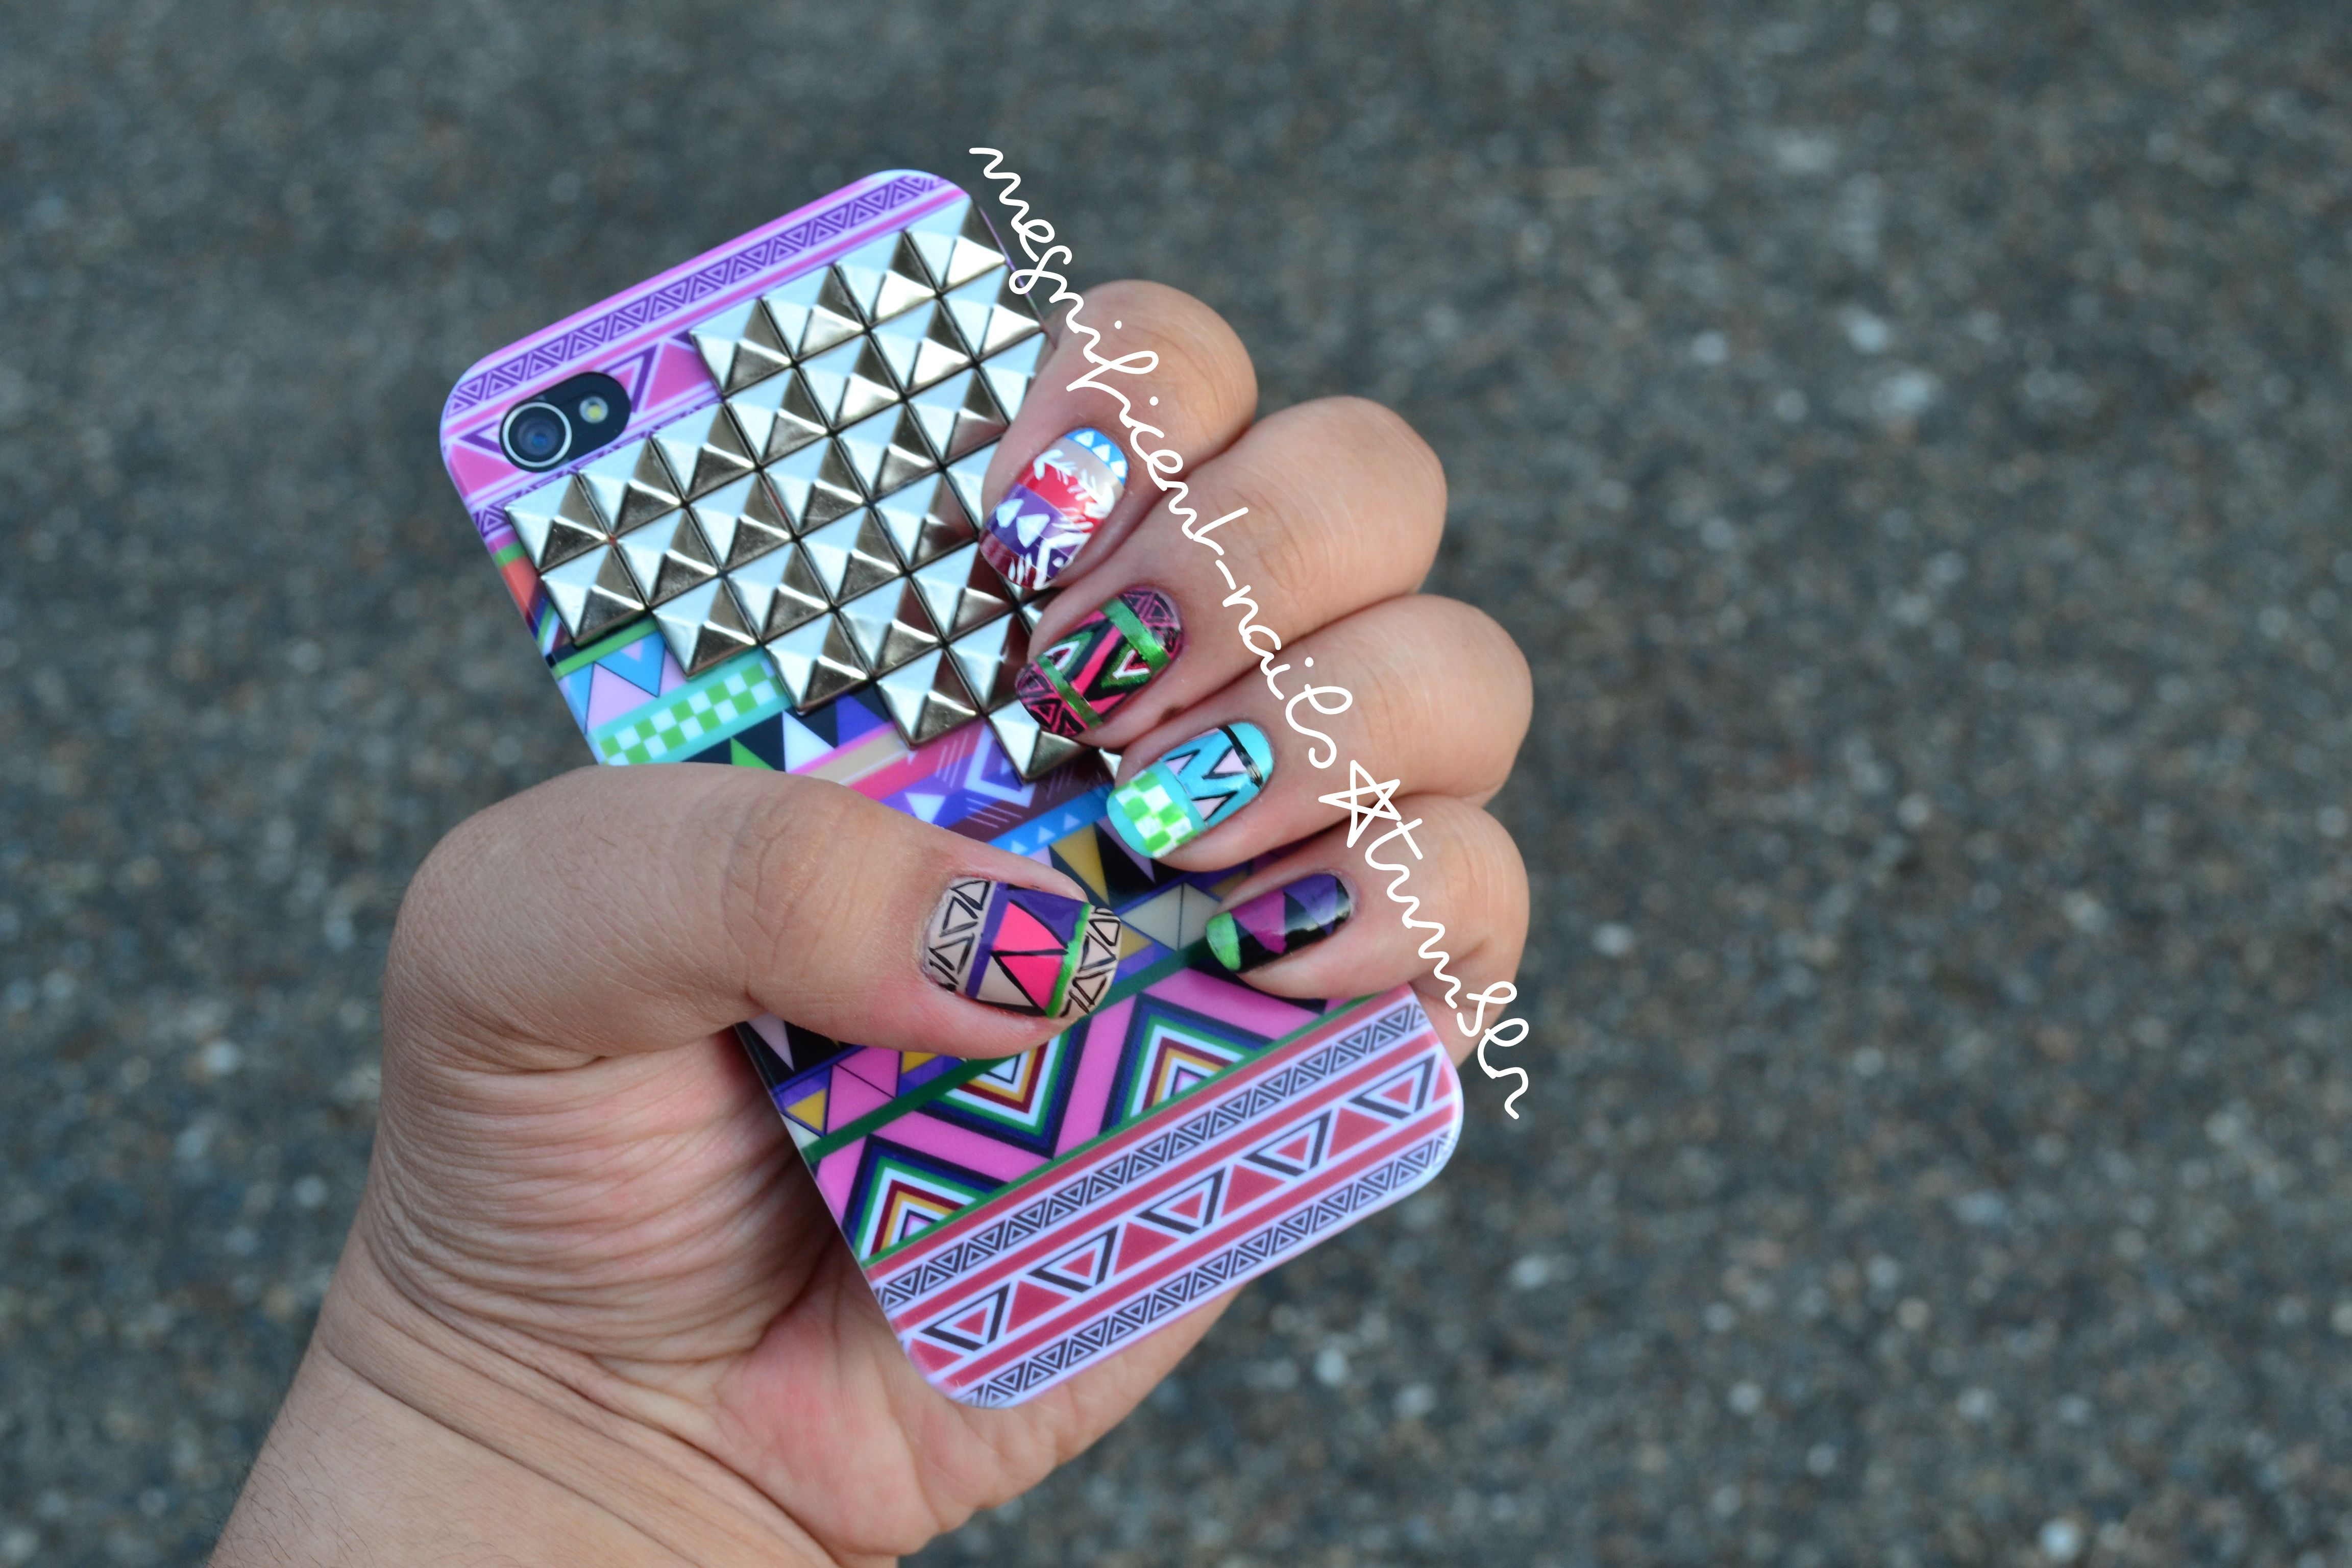 Inspired by my new iPhone case! Check out MARGAUXBONNIE.COM for beautiful hand-studded cases like this and so much more! #nails #nailart #Tribal #Aztec